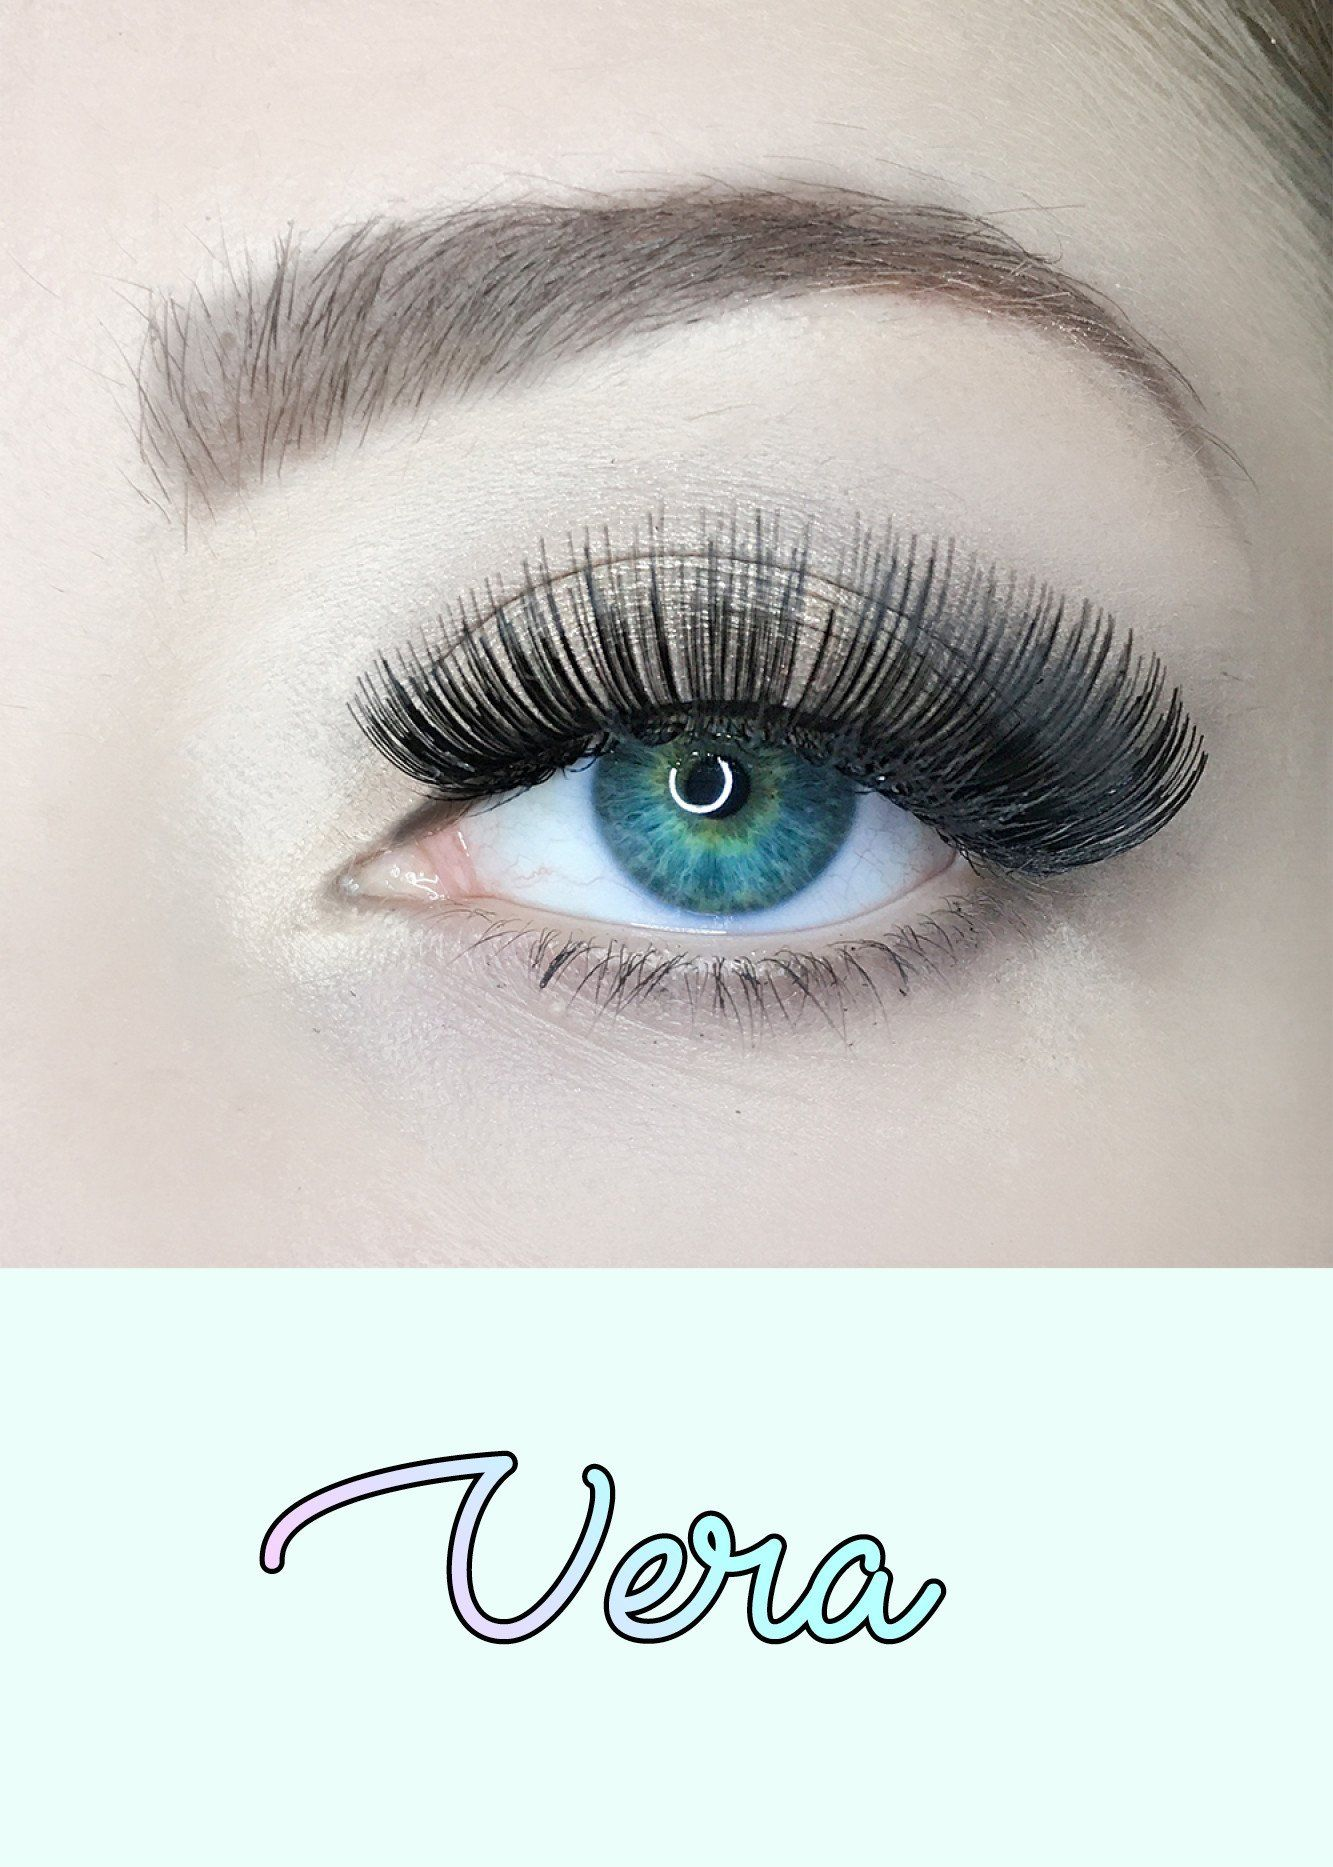 acc7313a653 AOA Studio Eyelashes - Vera in 2019 | issa look | Eyelashes, Lashes ...